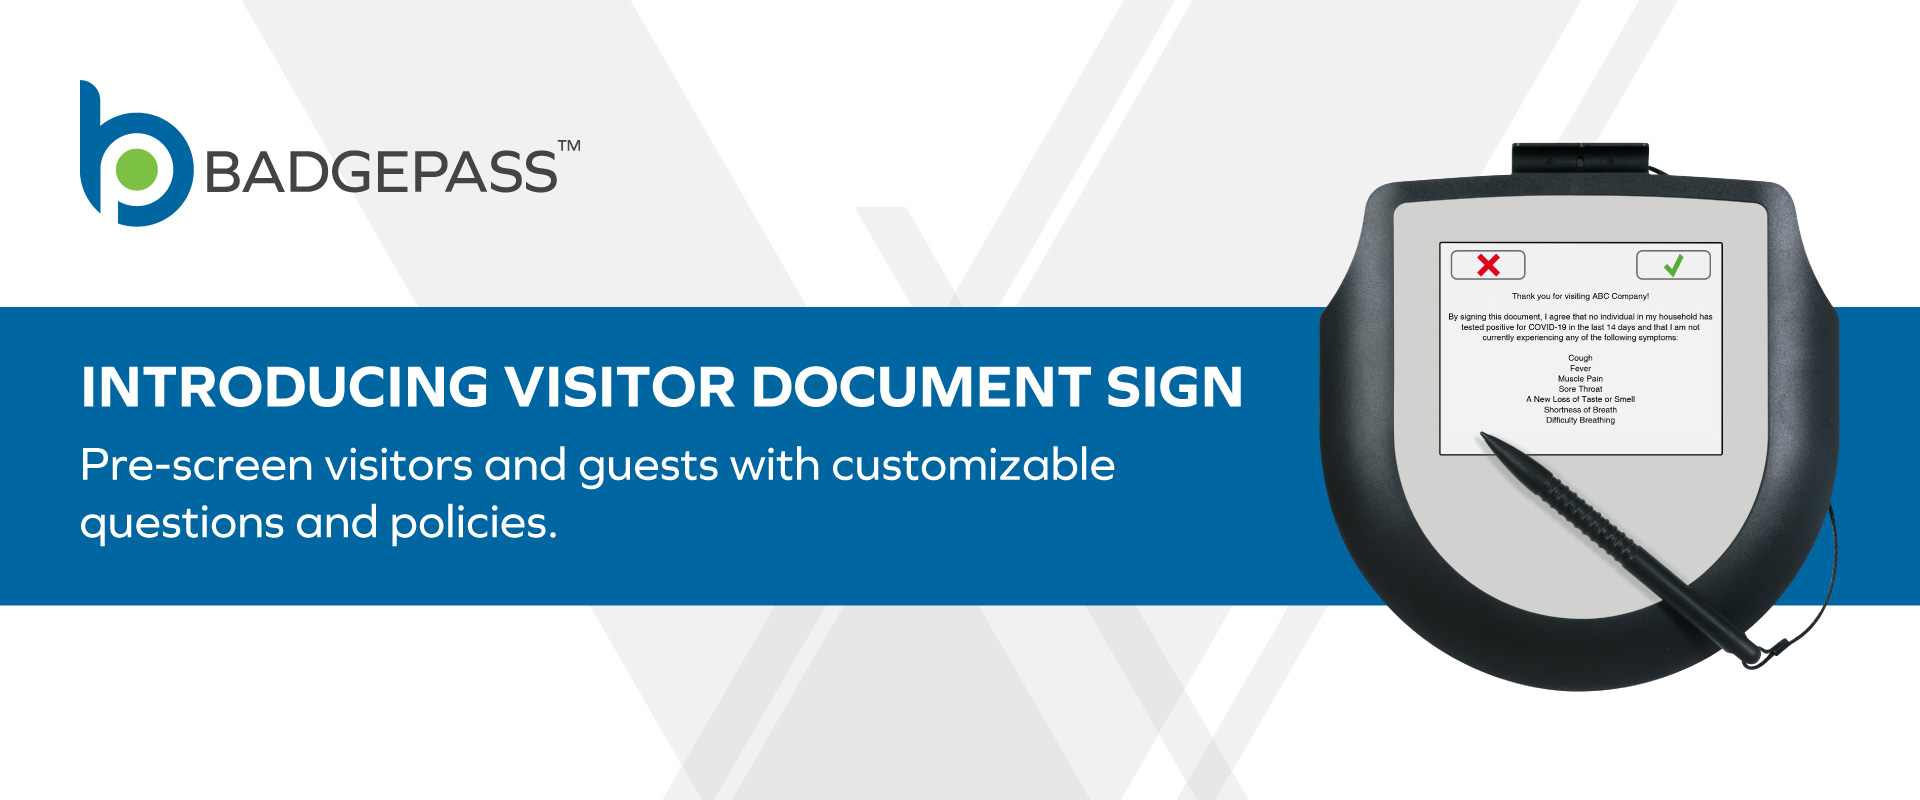 Image of Signature Pad with custom on BadgePass themed template